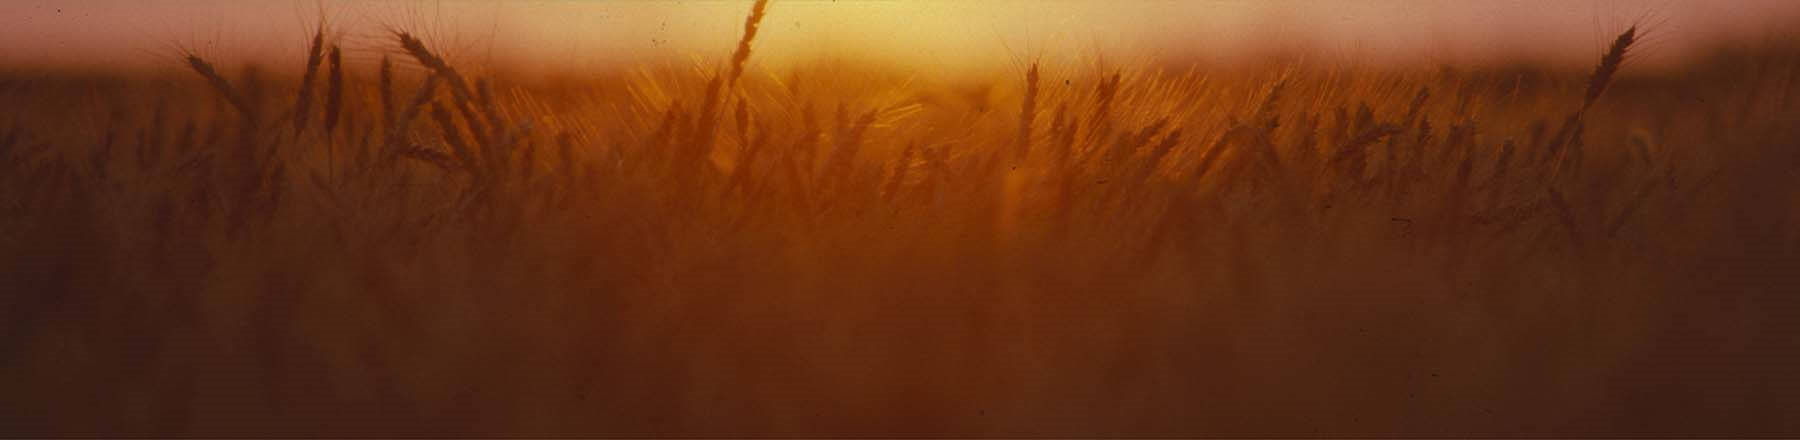 Wheatfield at sunset.